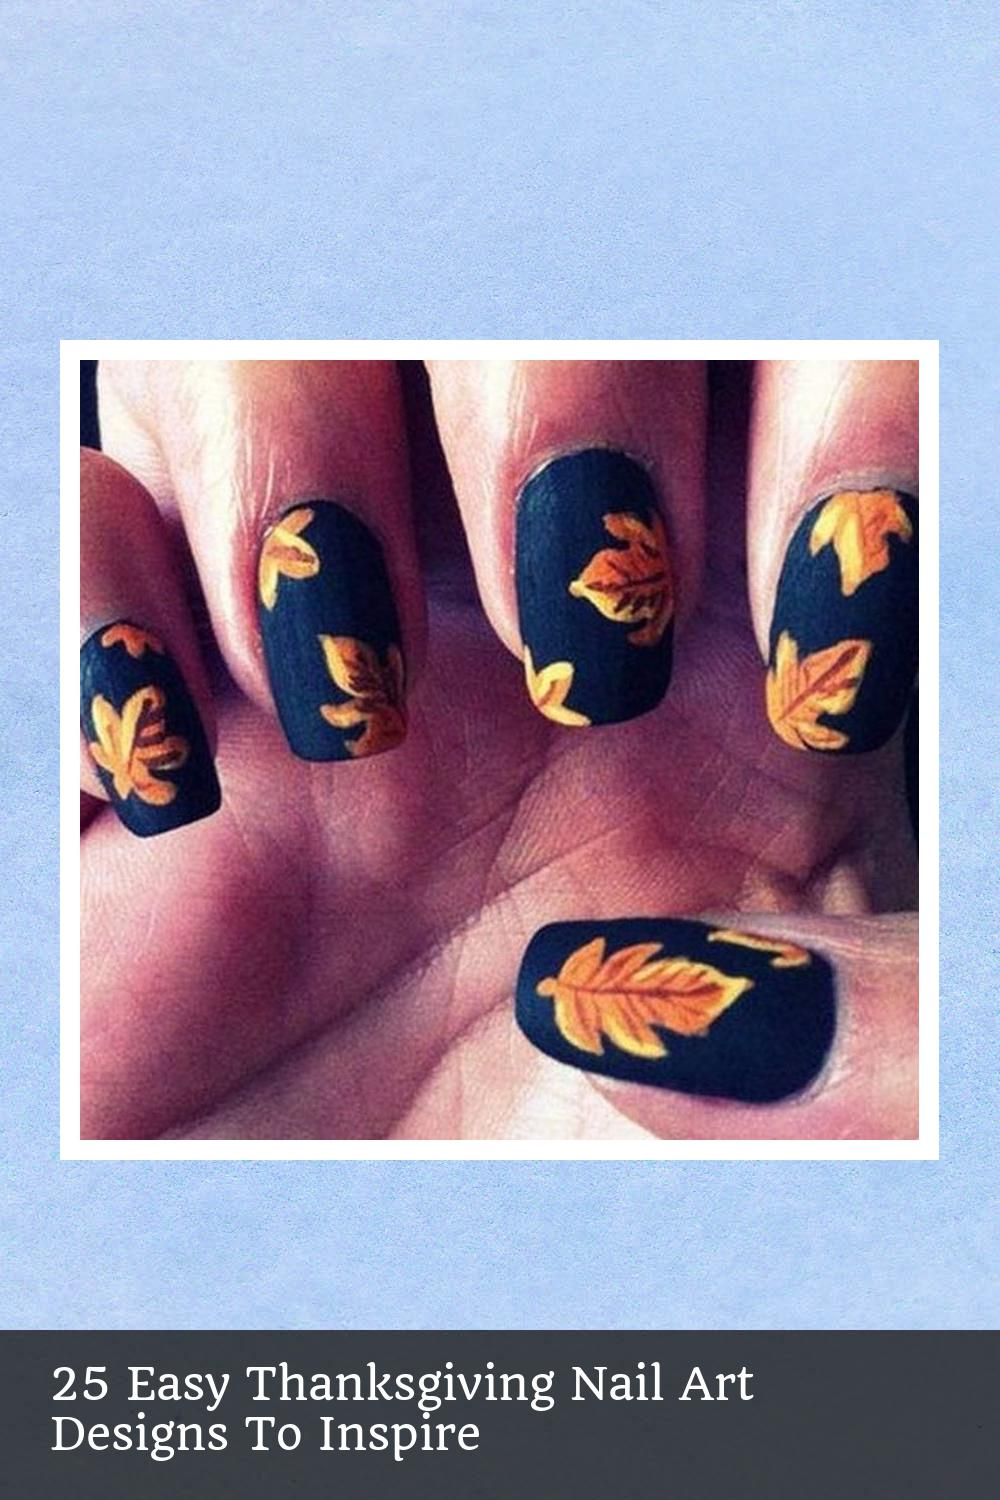 25 Easy Thanksgiving Nail Art Designs To Inspire 21